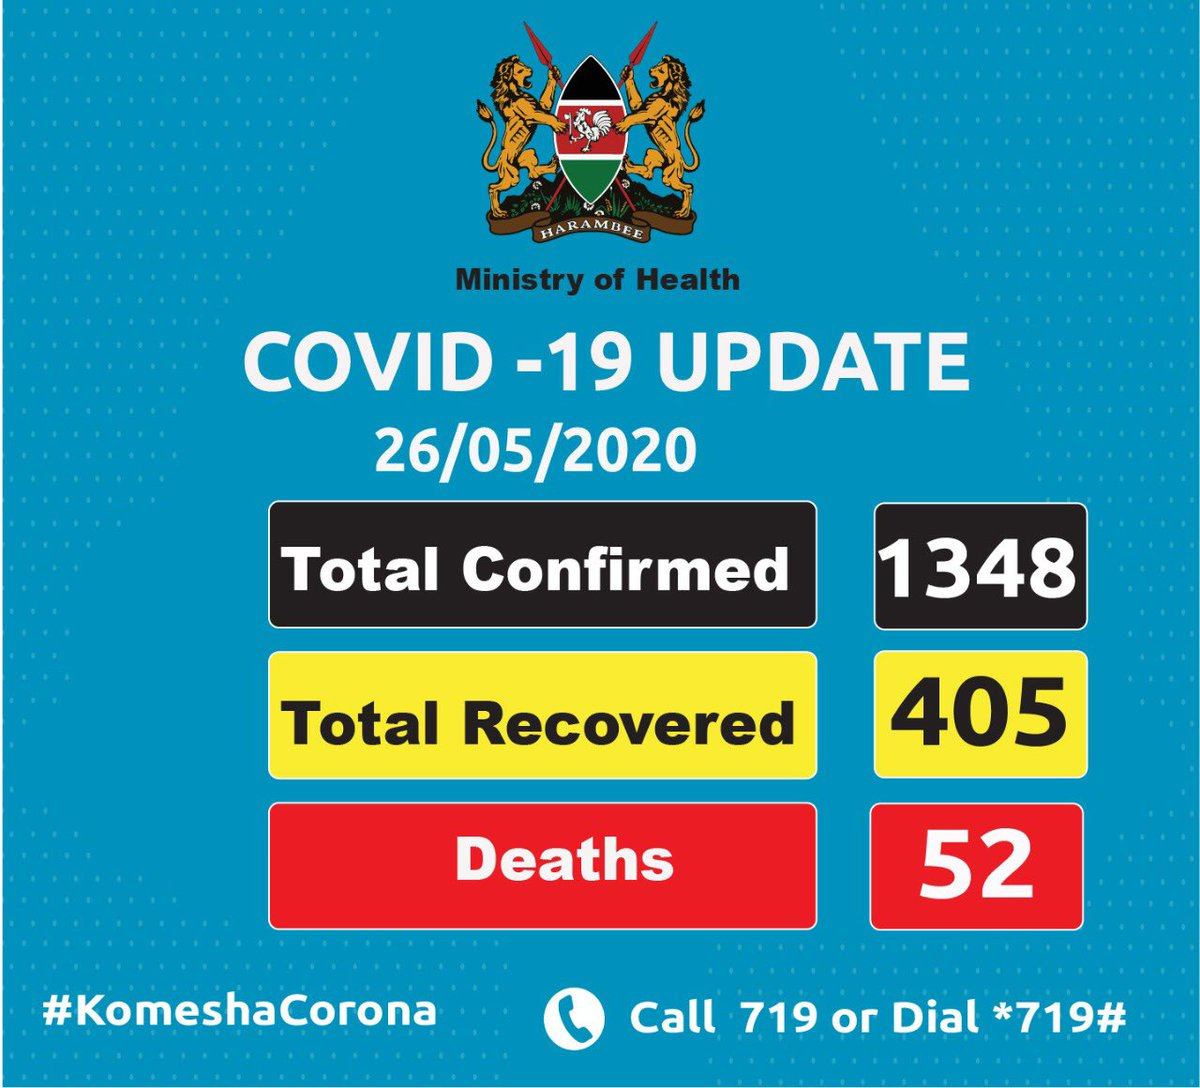 We are glad to inform you that we have discharged another 3 patients who have recovered from the disease, bringing the total number of those who have recovered to 405. We thank our healthcare workers for the good job. #KomeshaCorona update.